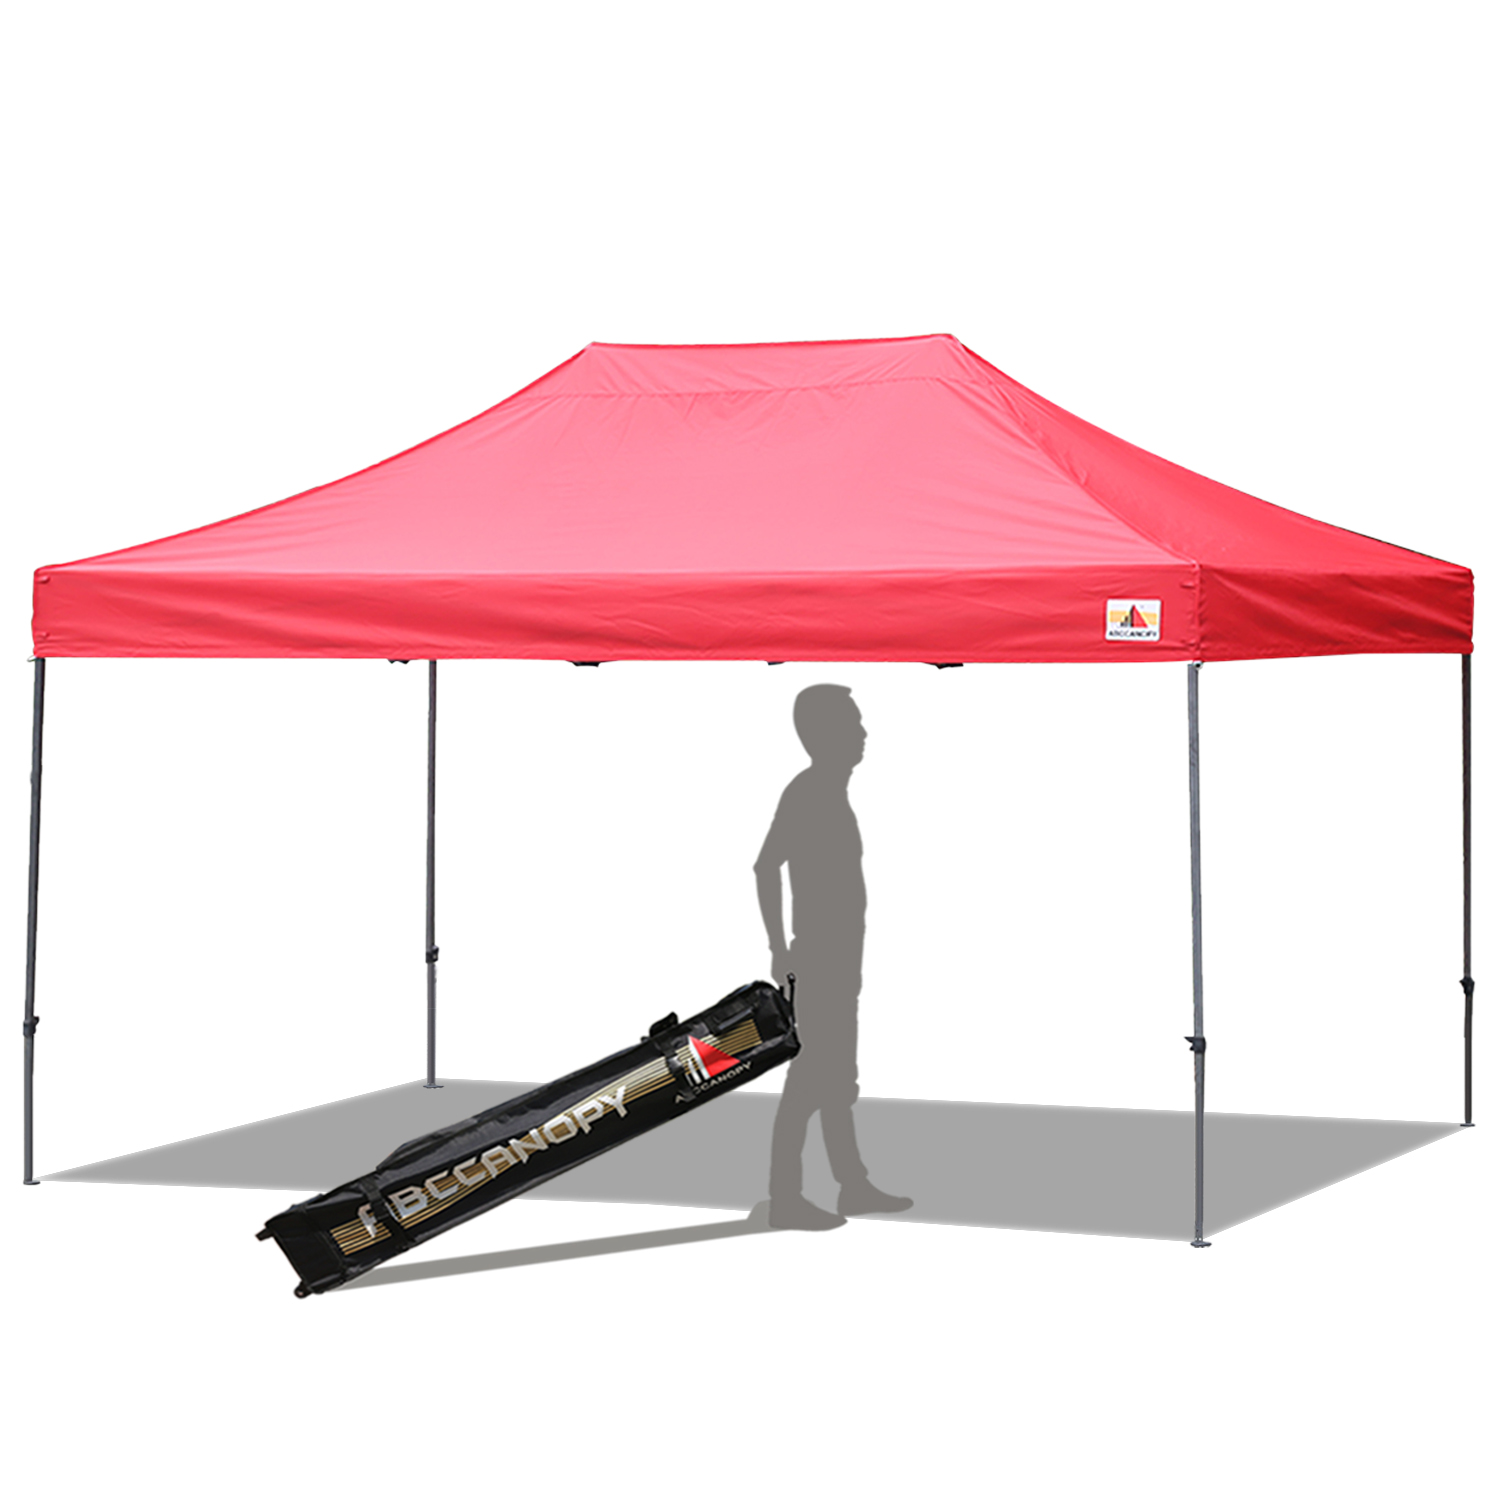 10x15 Ez Pop Up Canopy Instant Shelter Outdor Party Tent